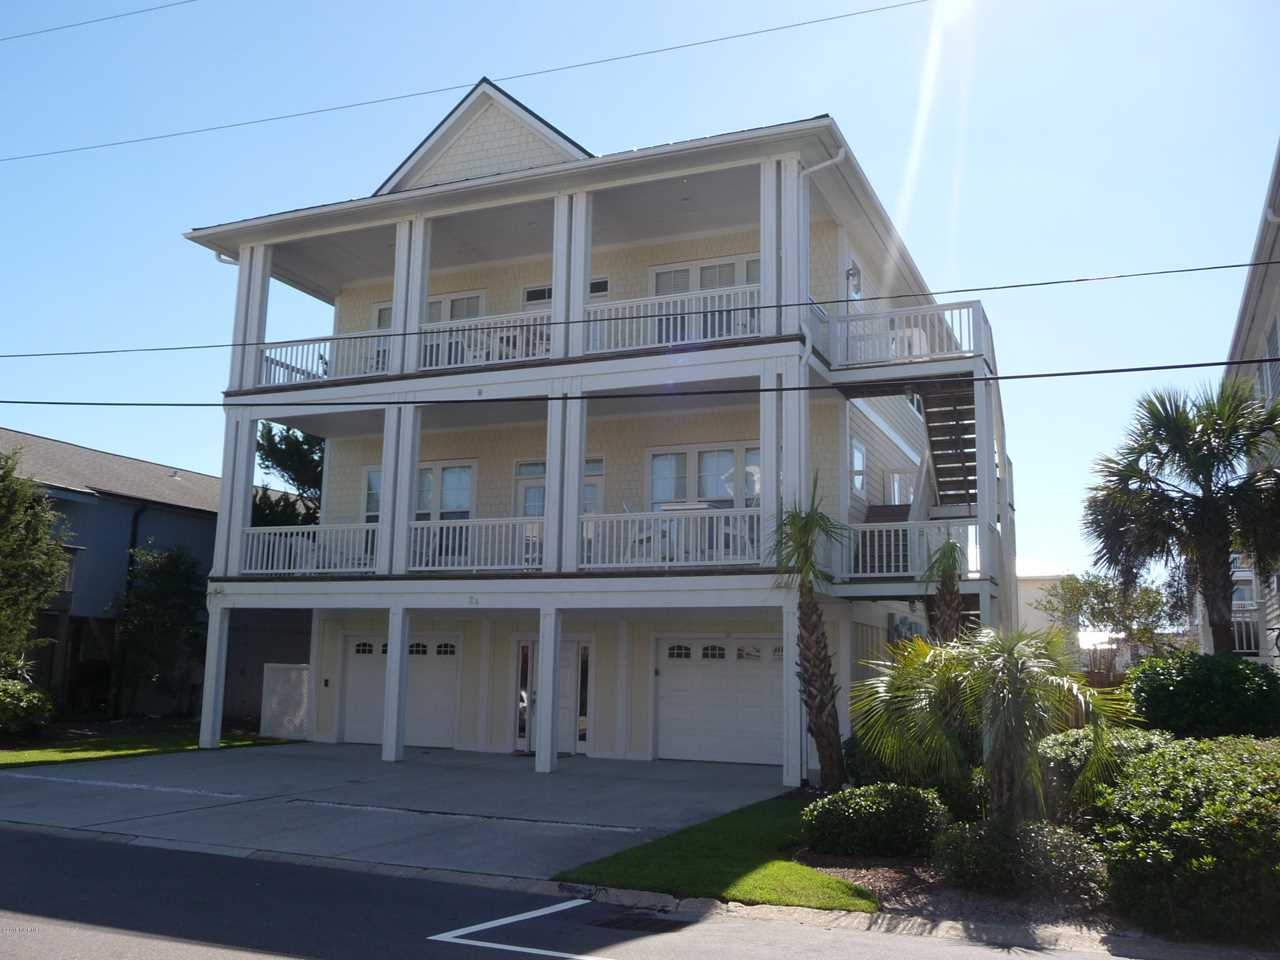 Home For Sale At 8 Shearwater Street, Wrightsville Beach NC in Not In Subdivision Photo 1